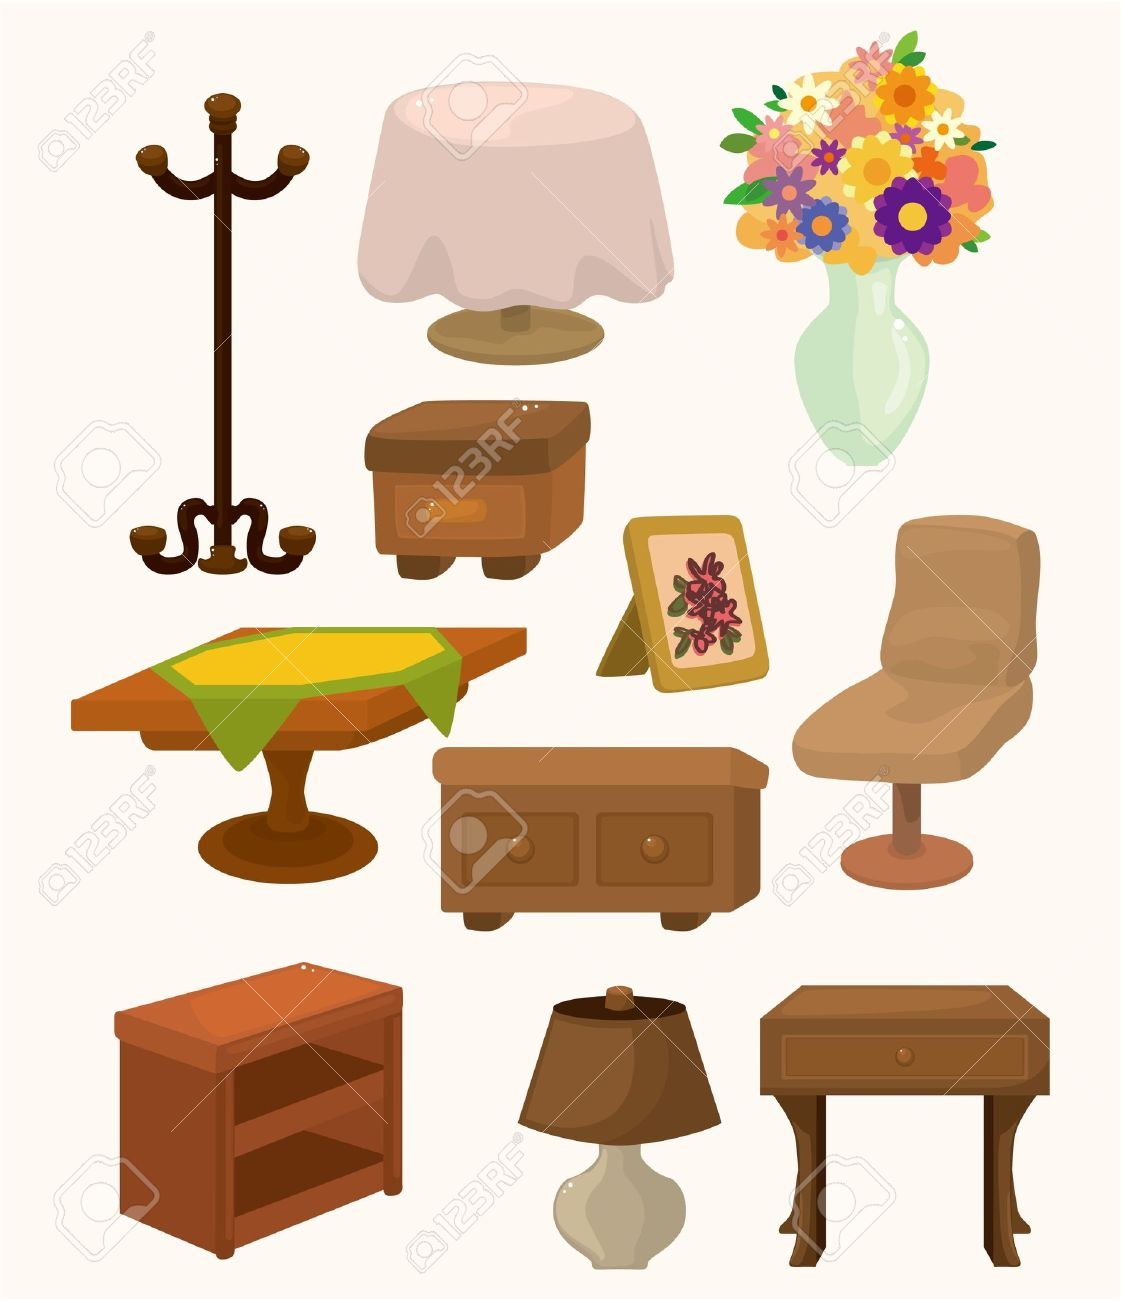 Tables and chairs cartoon - Table And Chairs Isolated Cartoon Furniture Icons